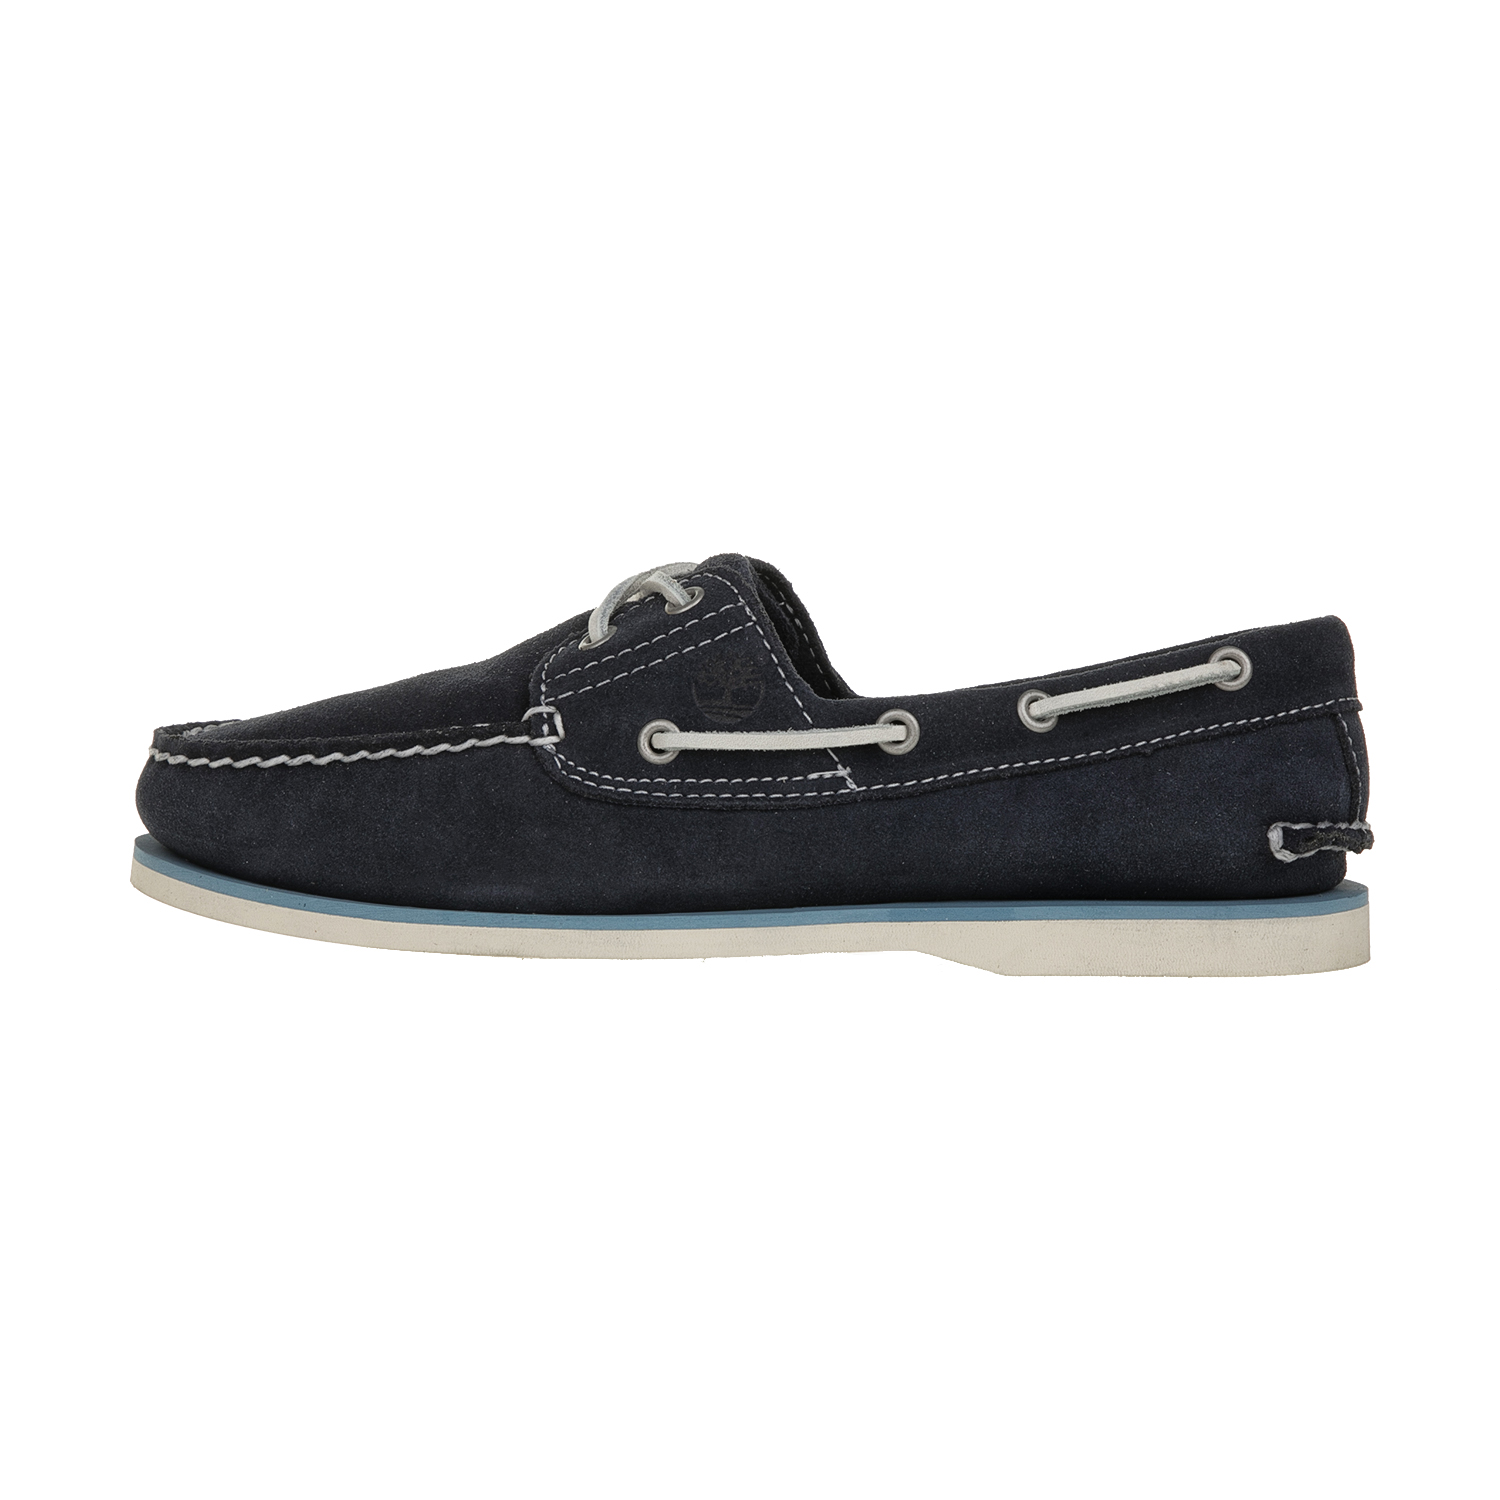 TIMBERLAND - Ανδρικά boat shoes TIMBERLAND CLASSIC 2 EYE BOAT μπλε σκούρα ανδρικά παπούτσια boat shoes